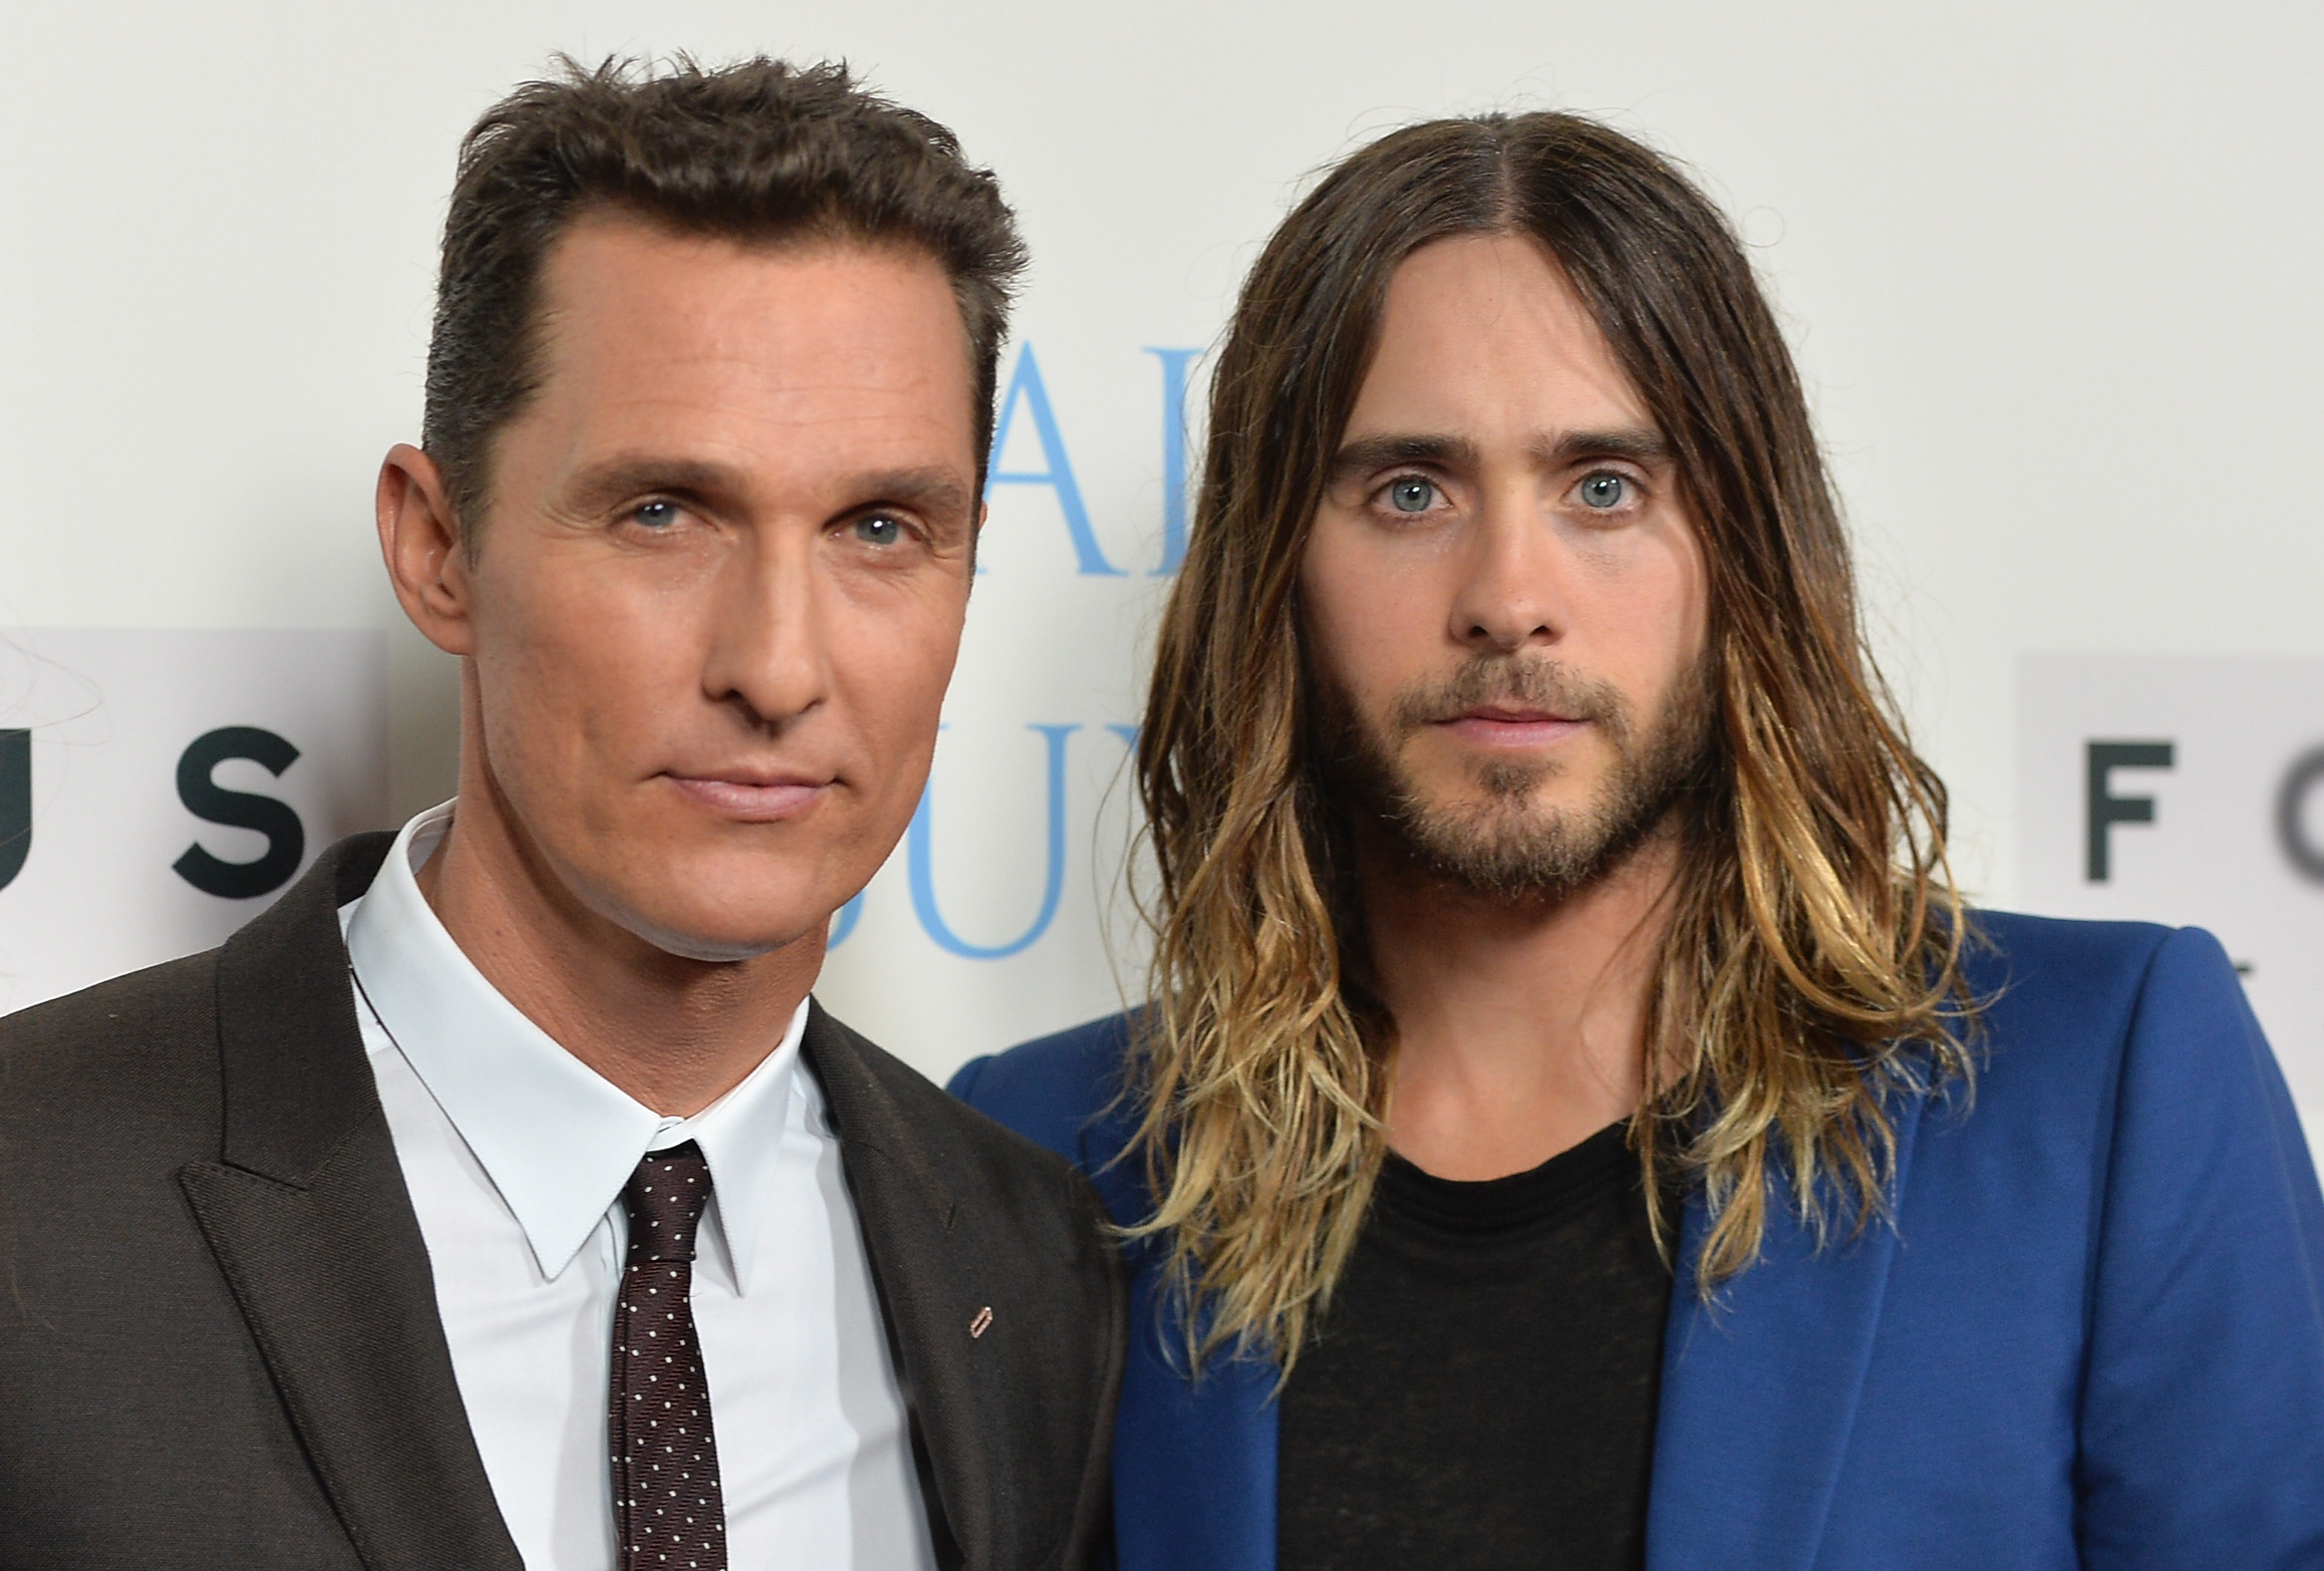 Matthew Mcconaughey S Weight Loss Gives Dallas Buyers Club Buzz